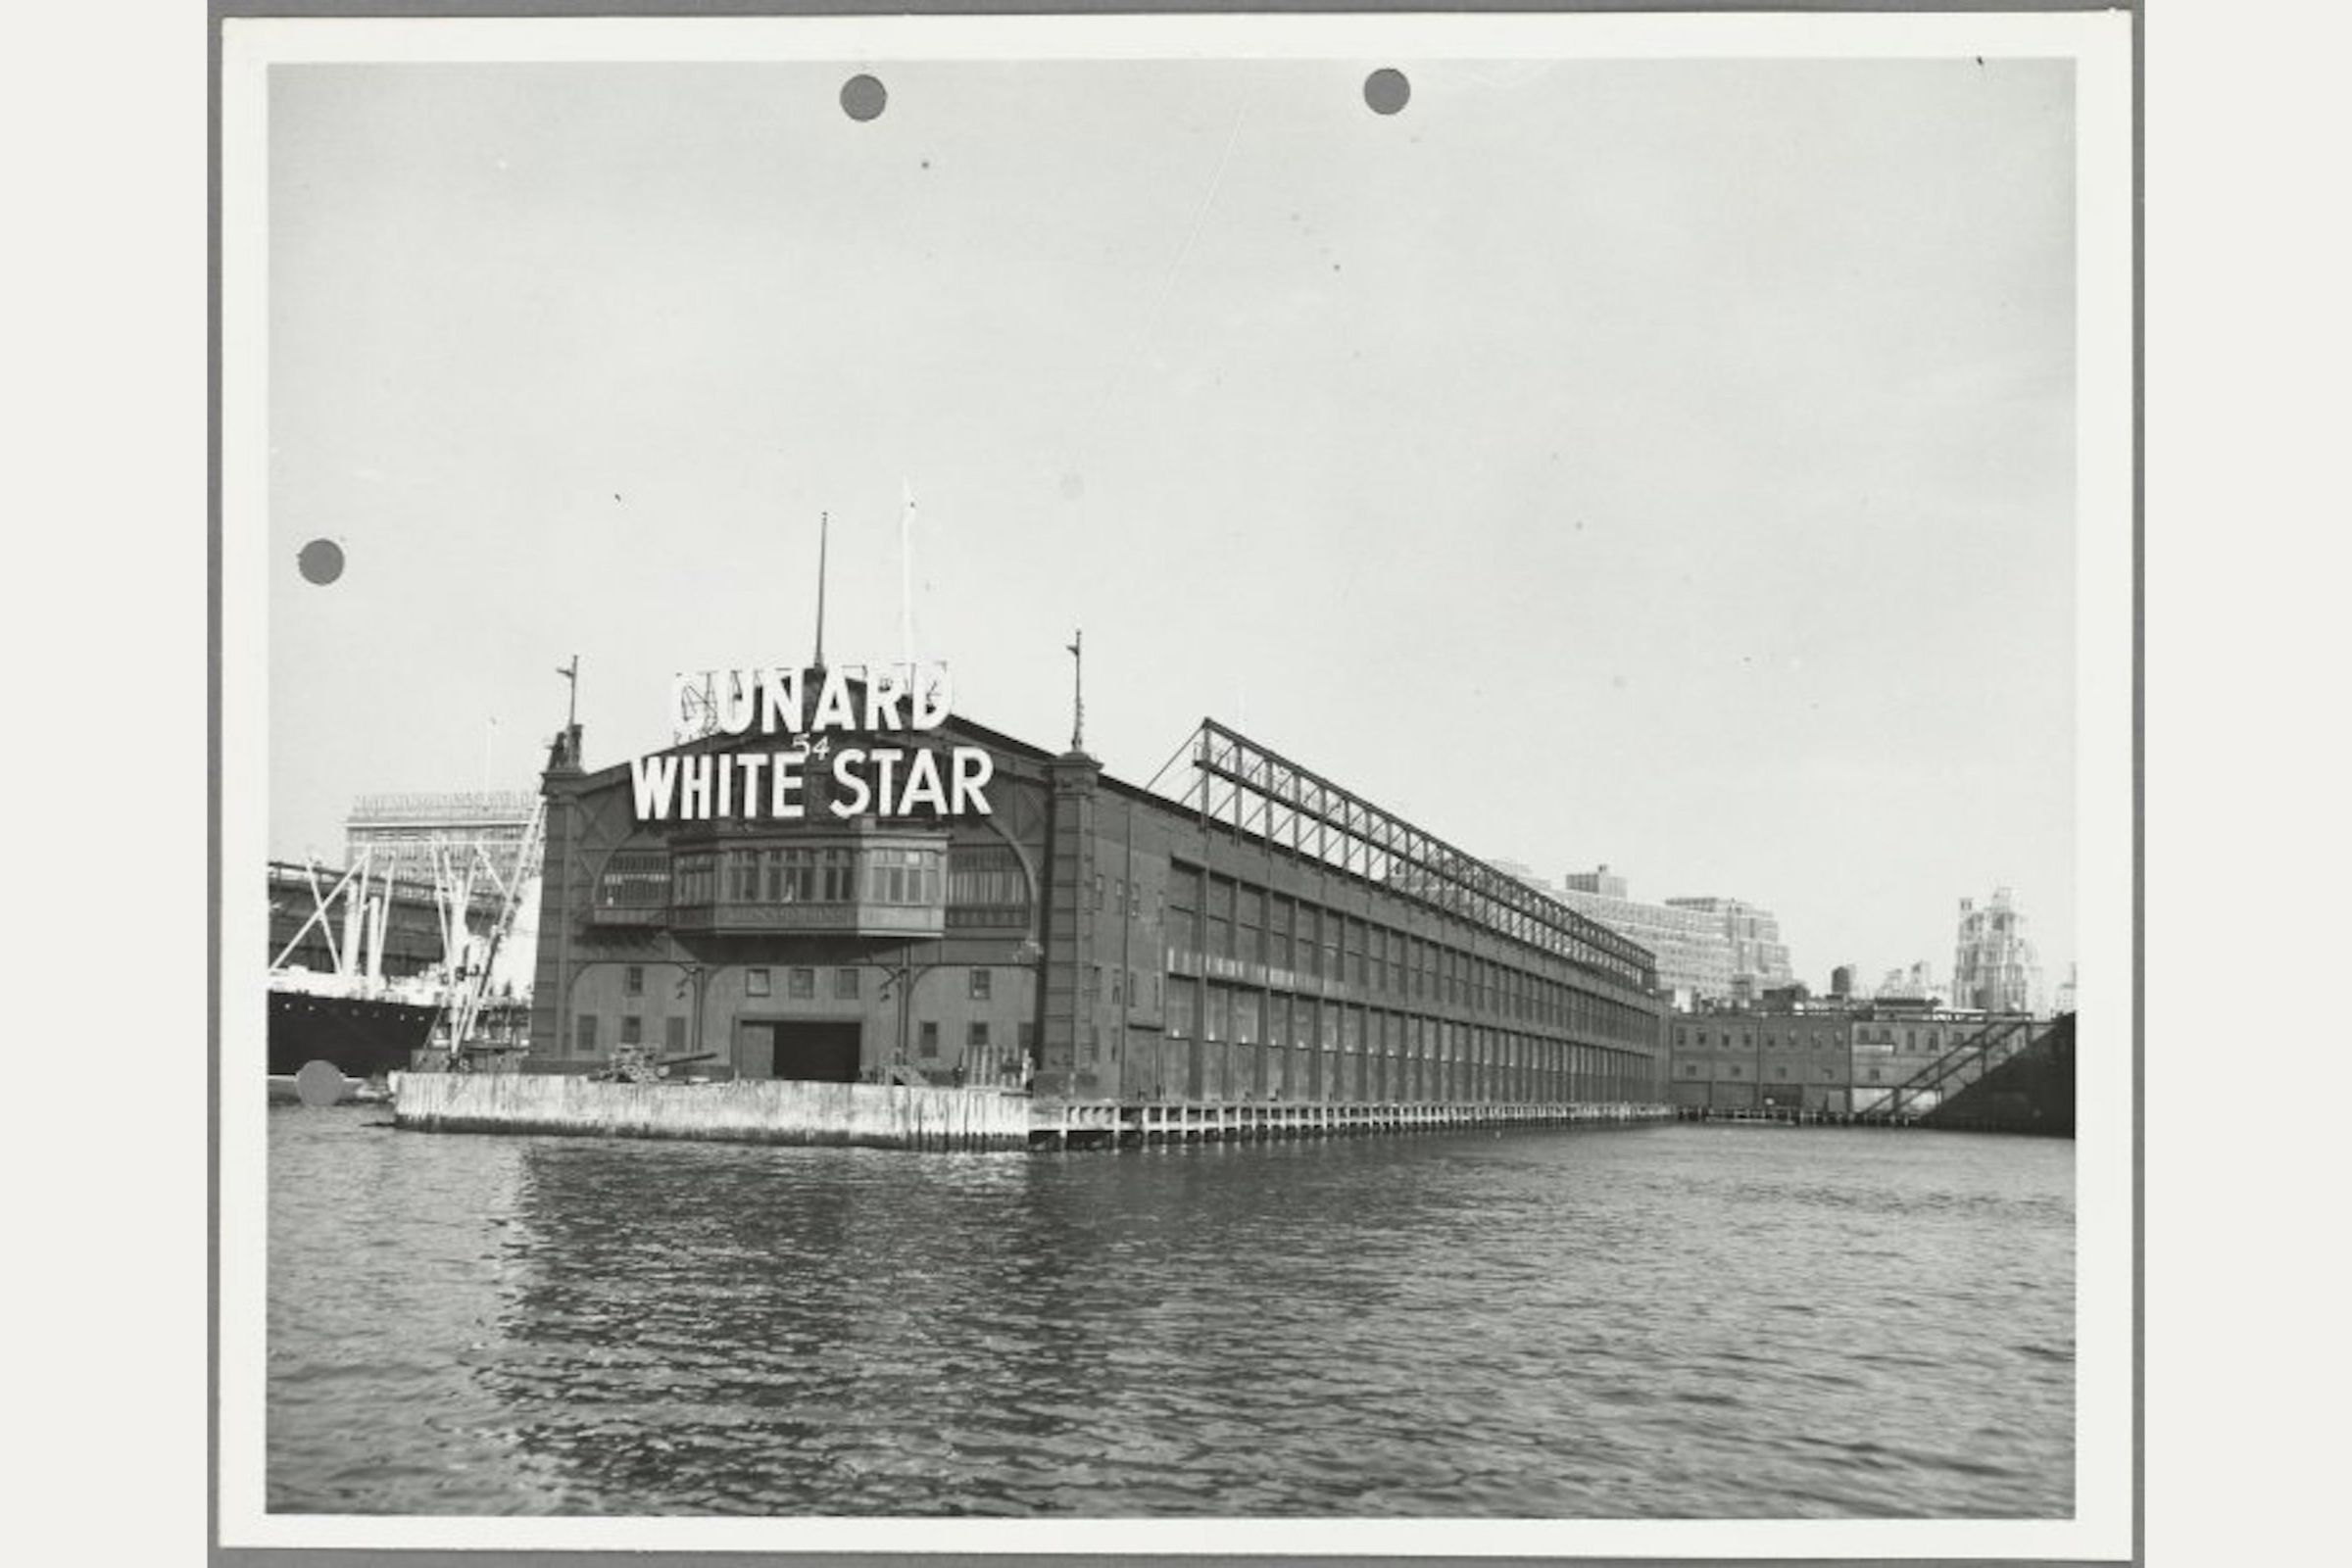 View of the Cunard White Star Line Pier 54 from the water